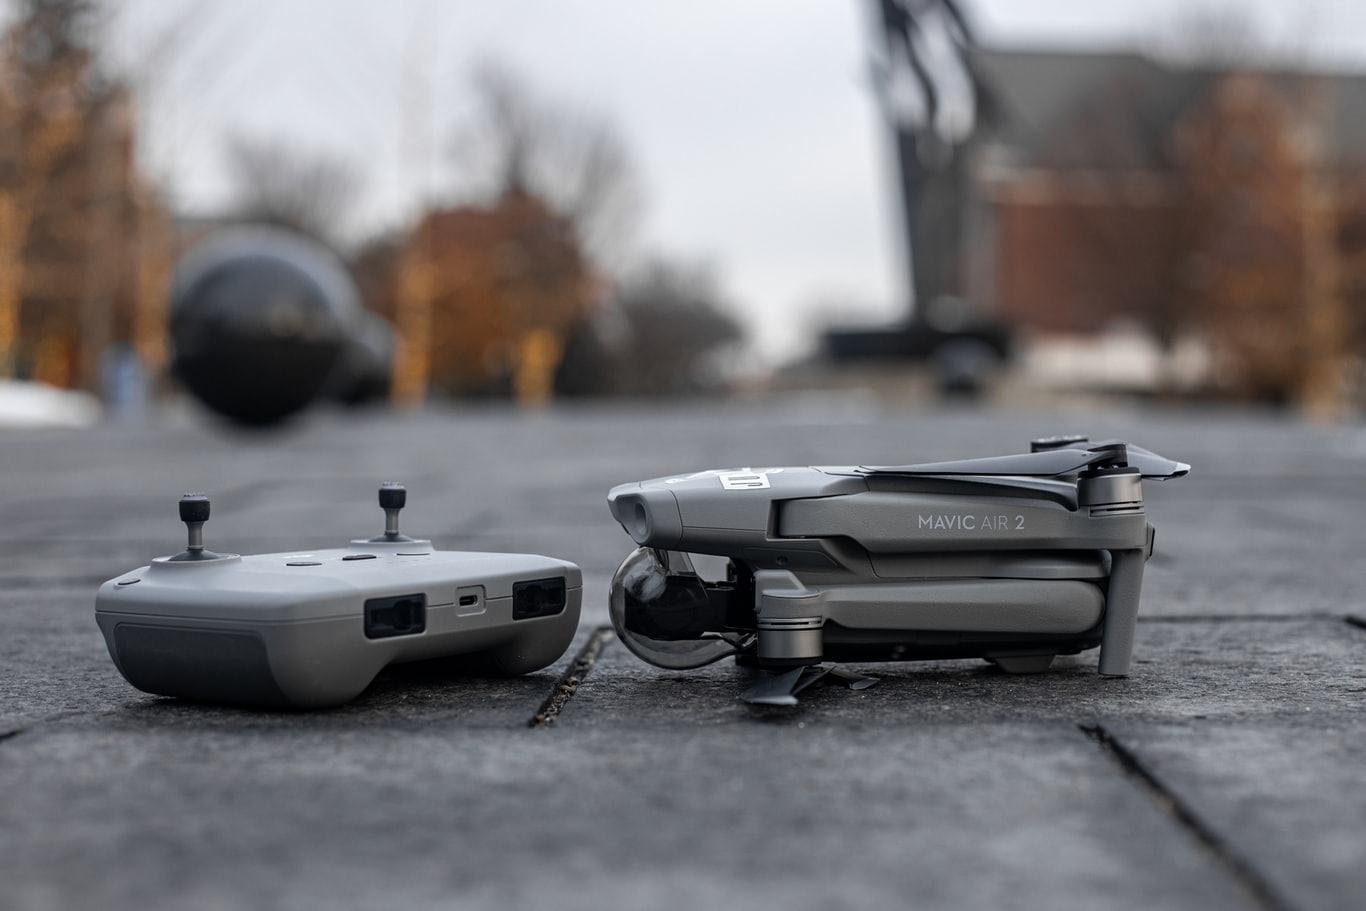 white and black drone on gray concrete floor